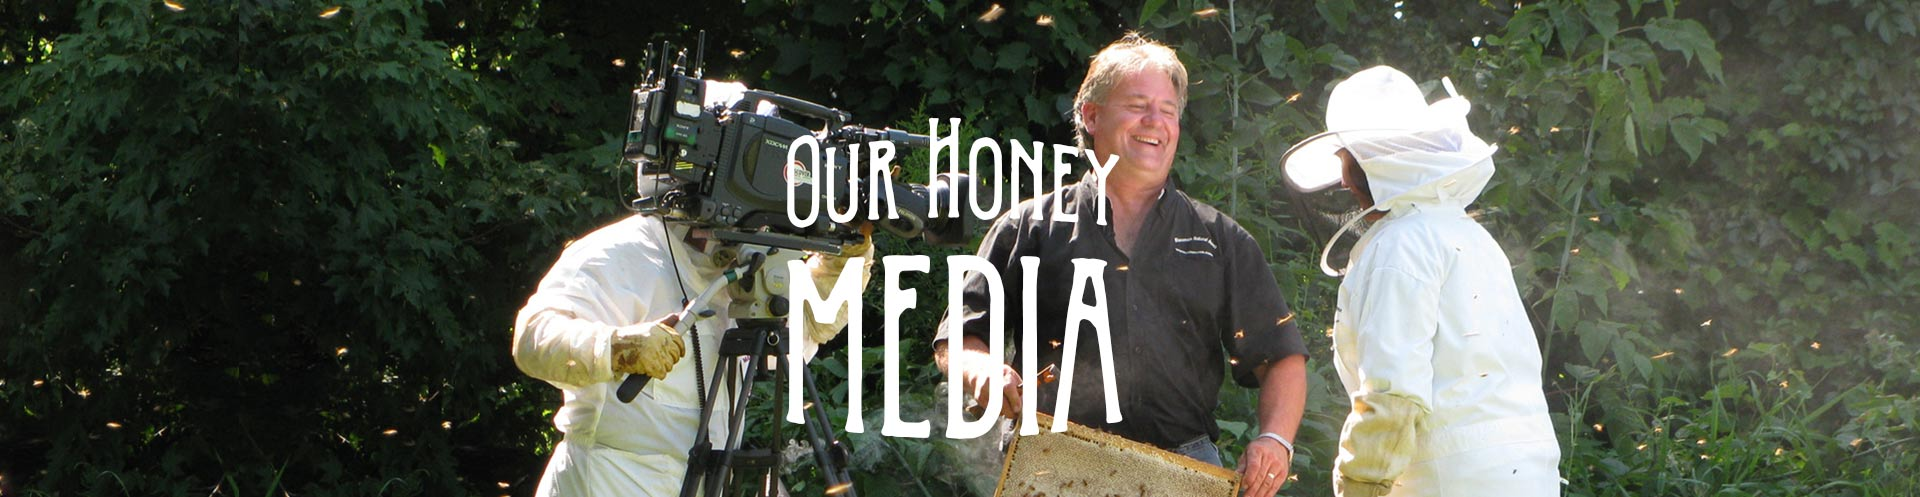 our-honey-media-banner